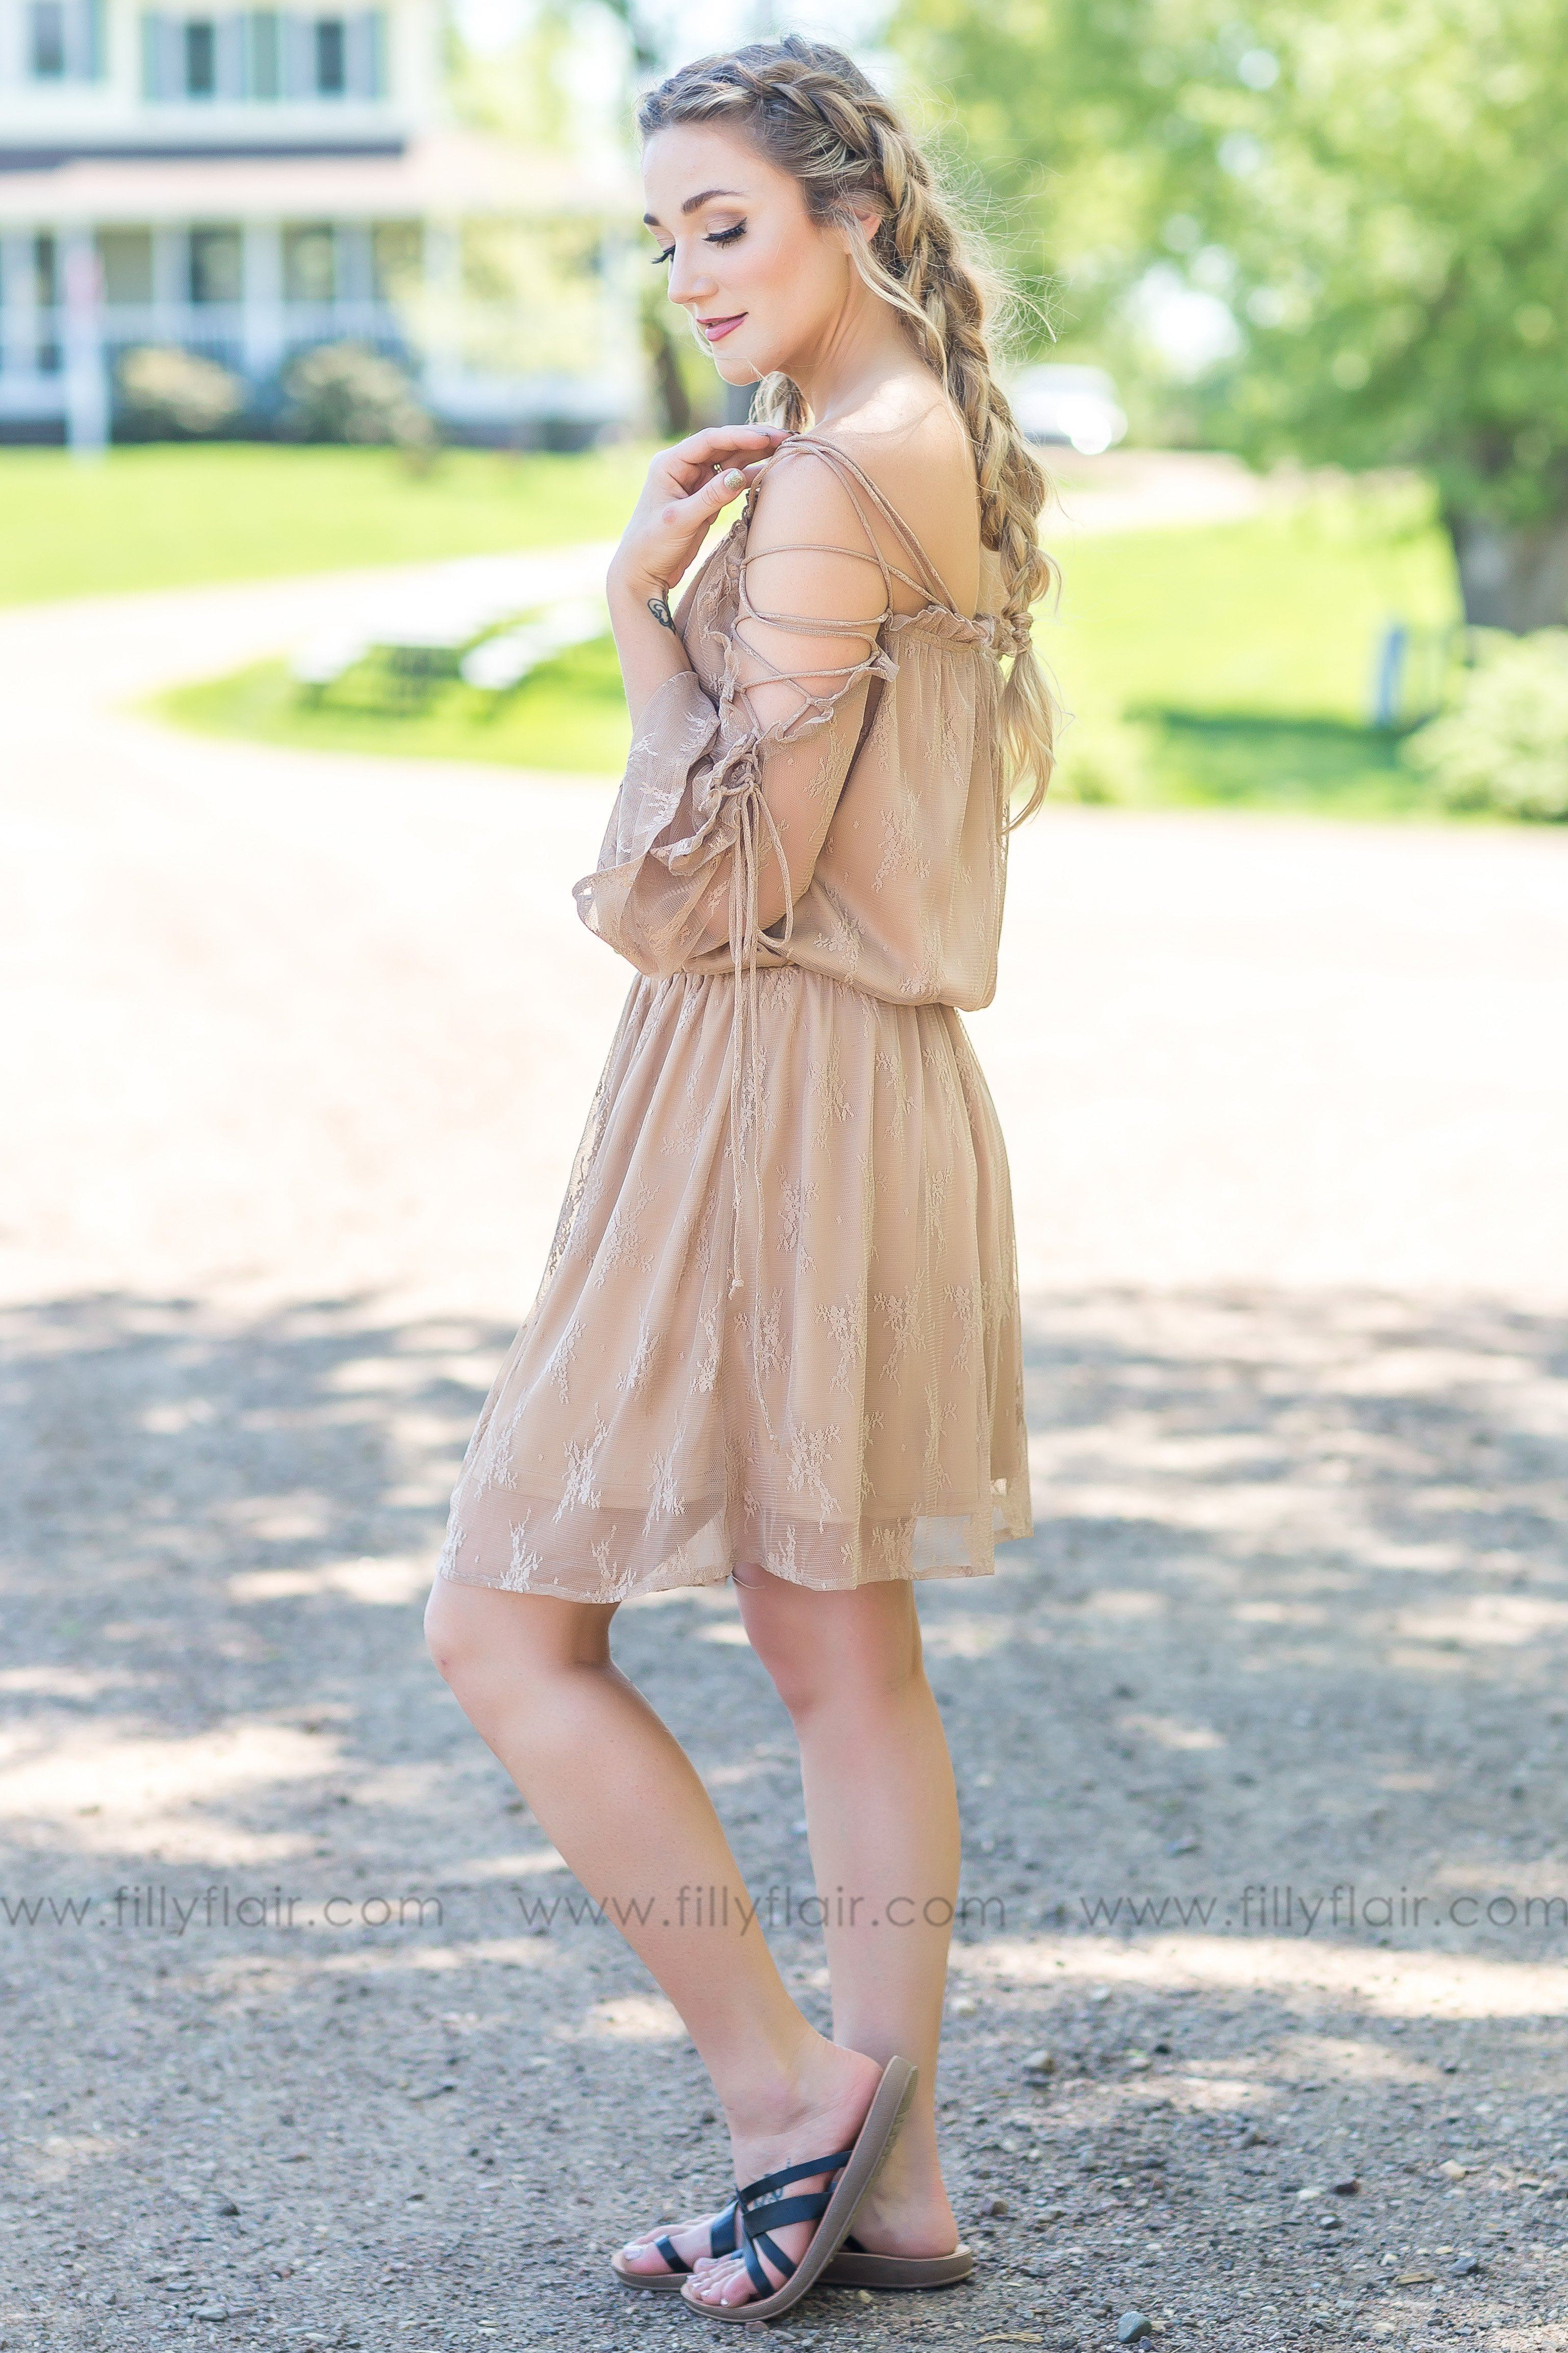 Hold It Together Lace Up Lace Mini Dress In Taupe - Filly Flair